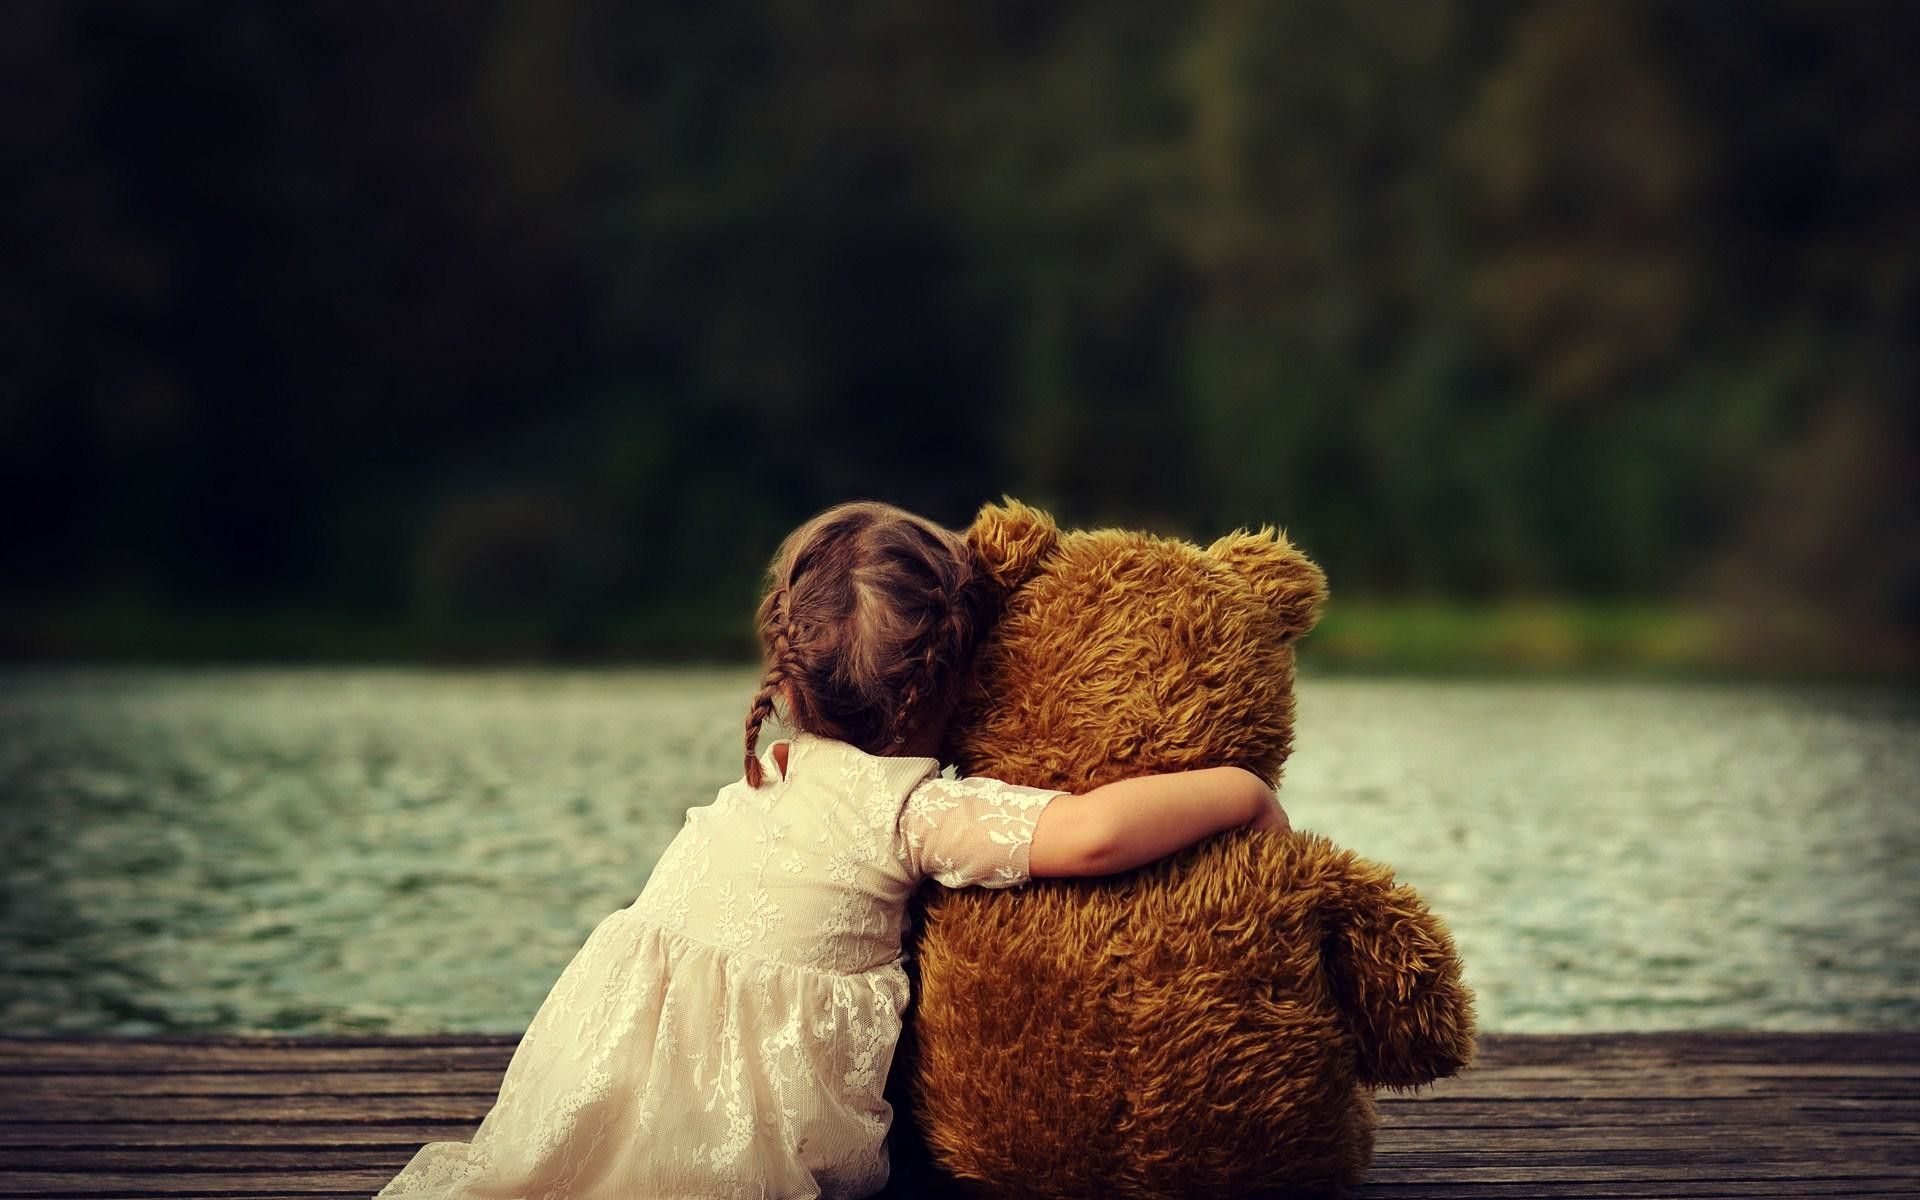 Teddy bear wallpaper 58 images 1920x1200 hd cute child girl with teddy bear wallpaper voltagebd Gallery